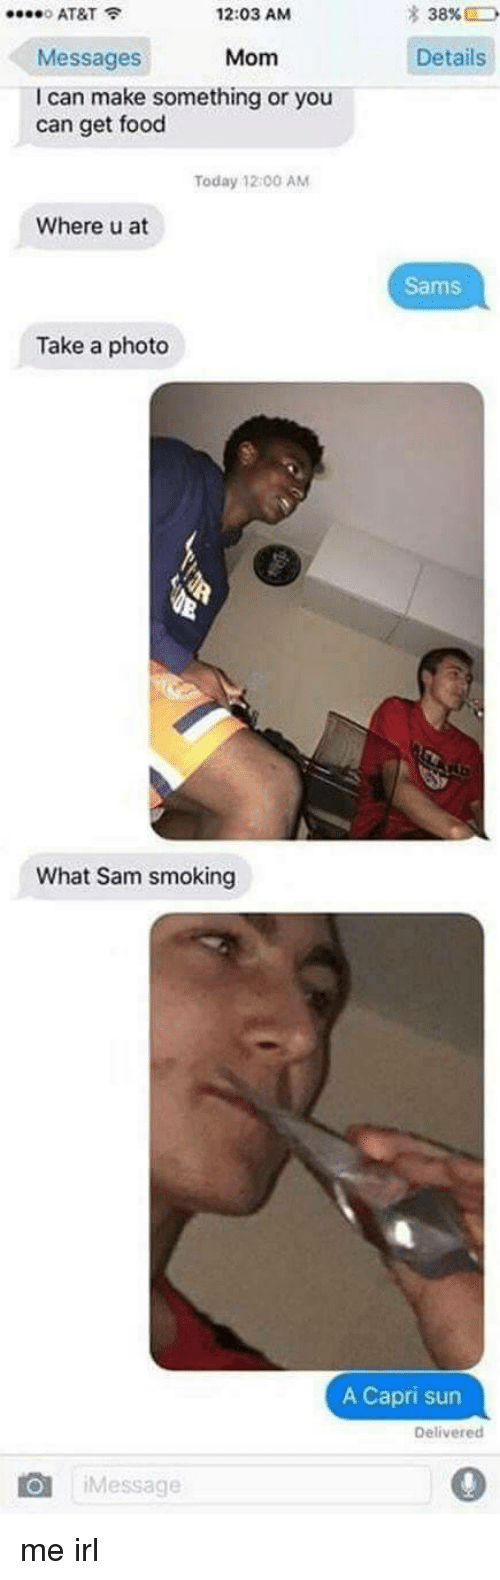 Food, Smoking, and At&t: * 38%  0 AT&T  Messages  I can make something or you  12:03 AM  Mom Details  can get food  Today 12 00 AM  Where u at  Sams  Take a photo  What Sam smoking  A Capri sun  Delivered  Message  0 me irl